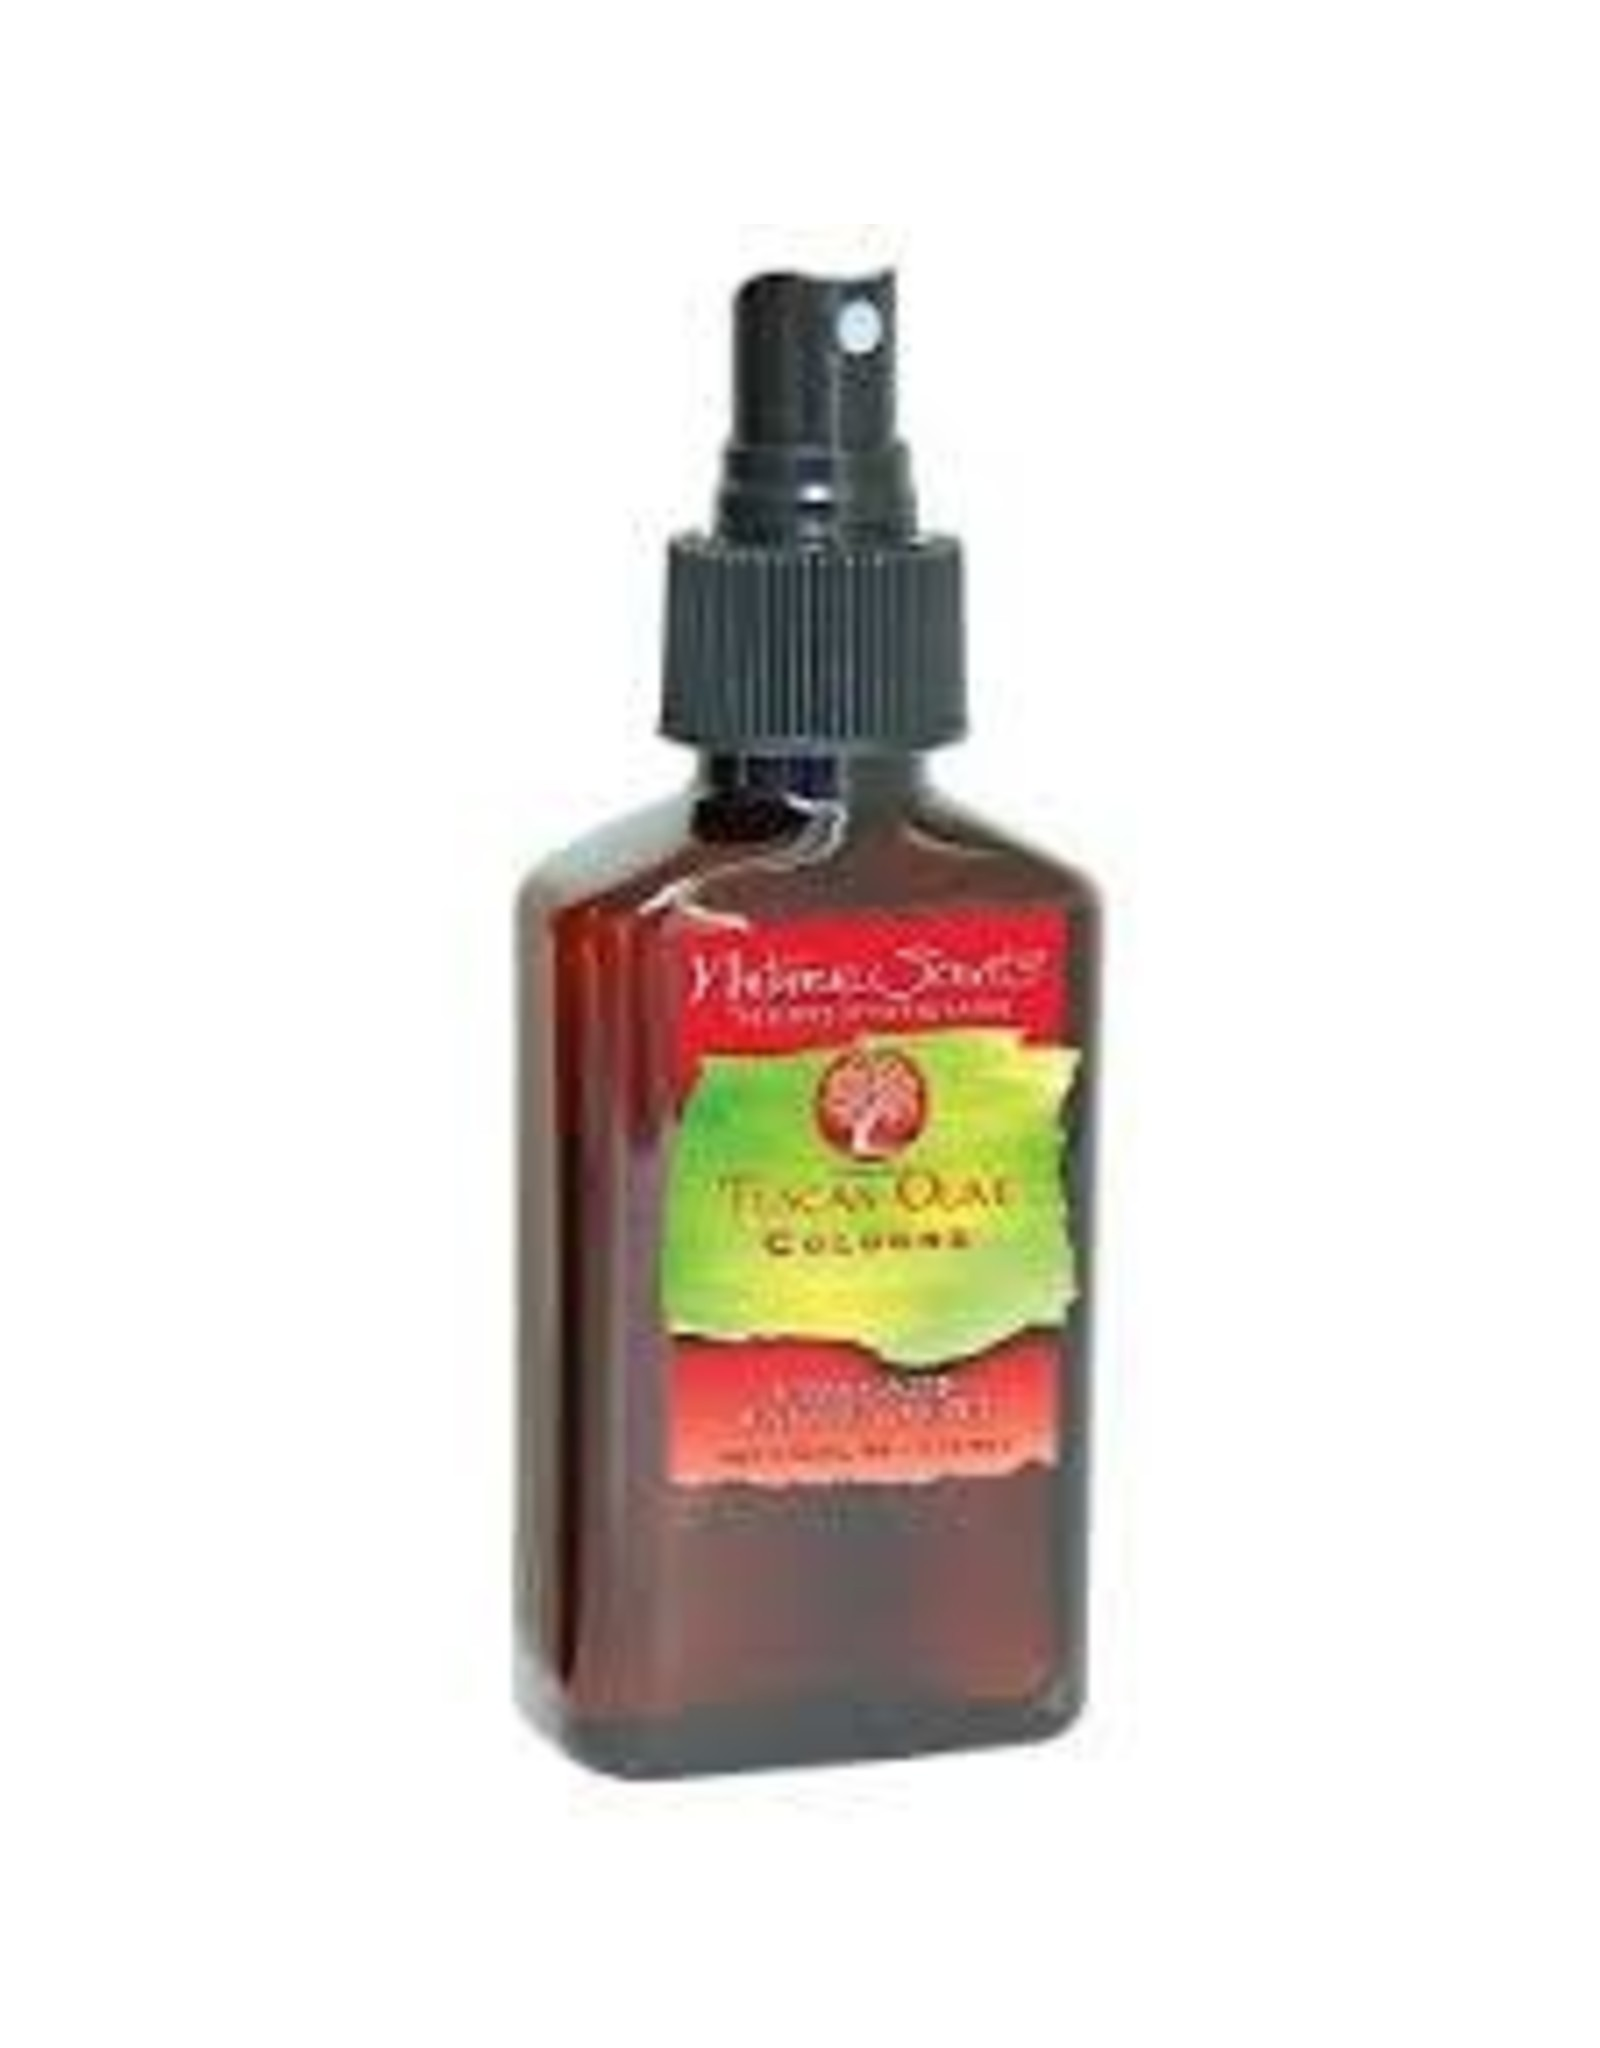 BIO GROOM NATURAL SCENTS TUSCAN OLIVE COLOGNE